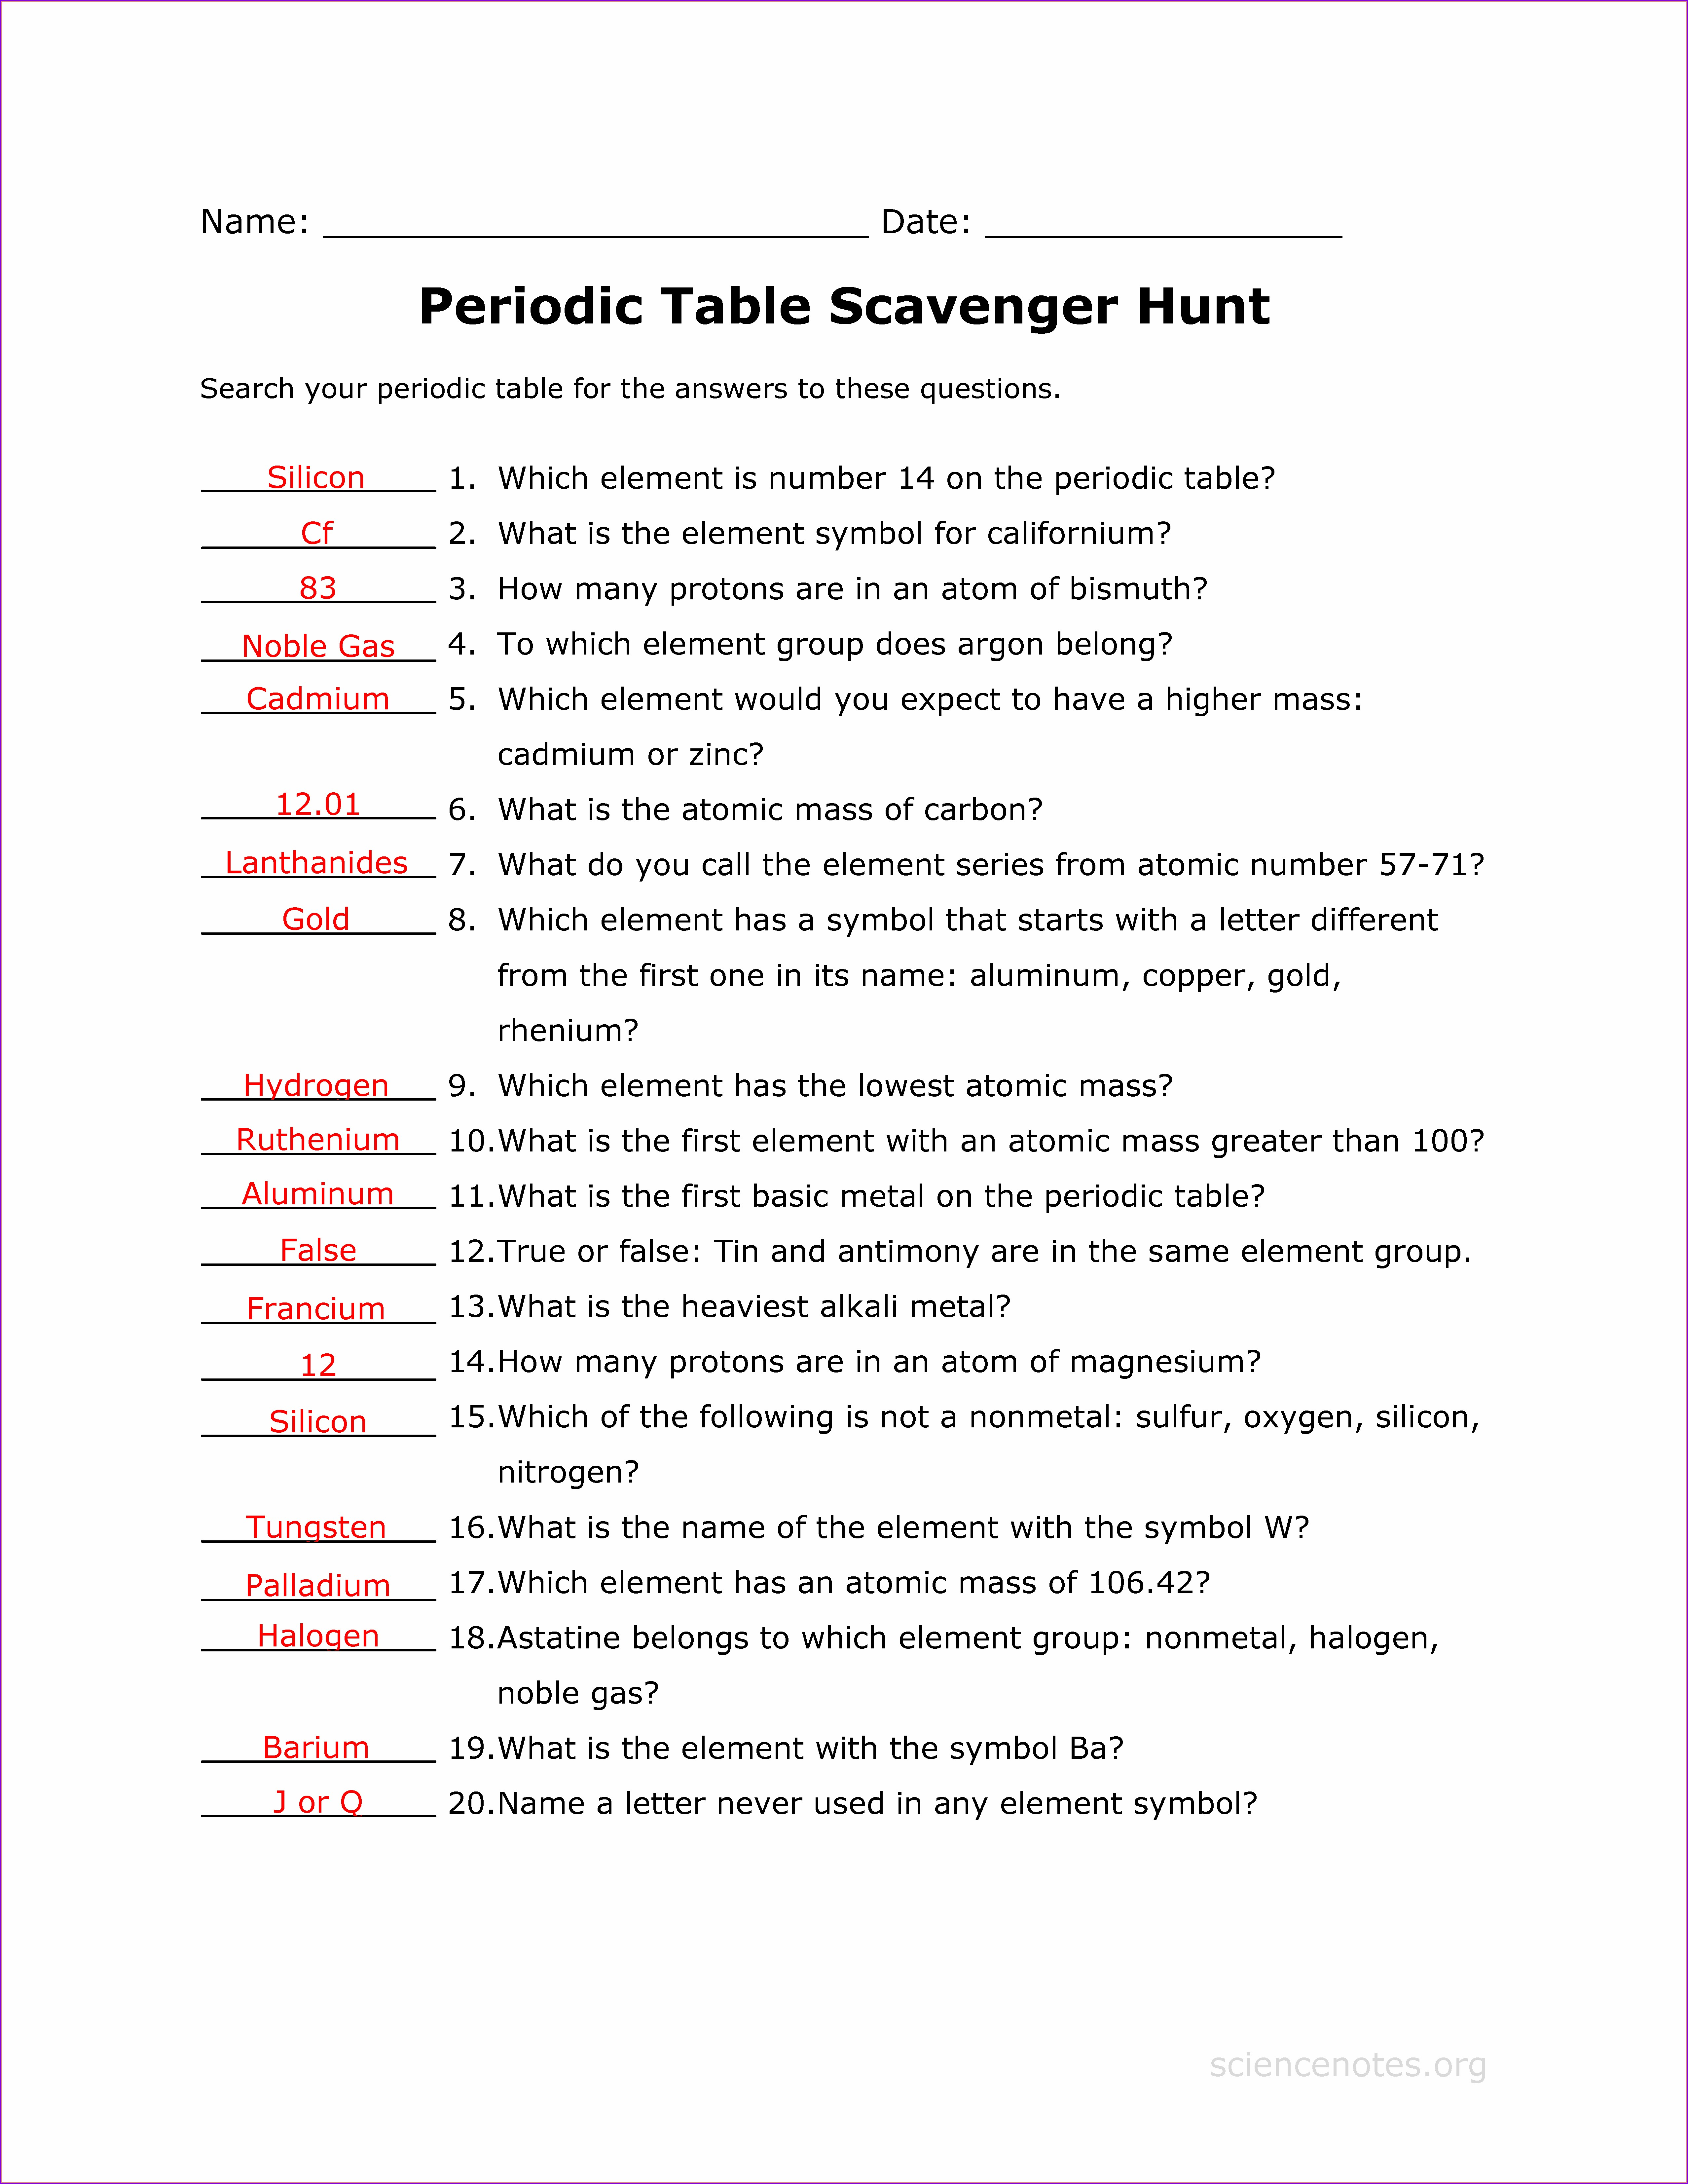 Periodic Table Scavenger Hunt Worksheet Answer Key